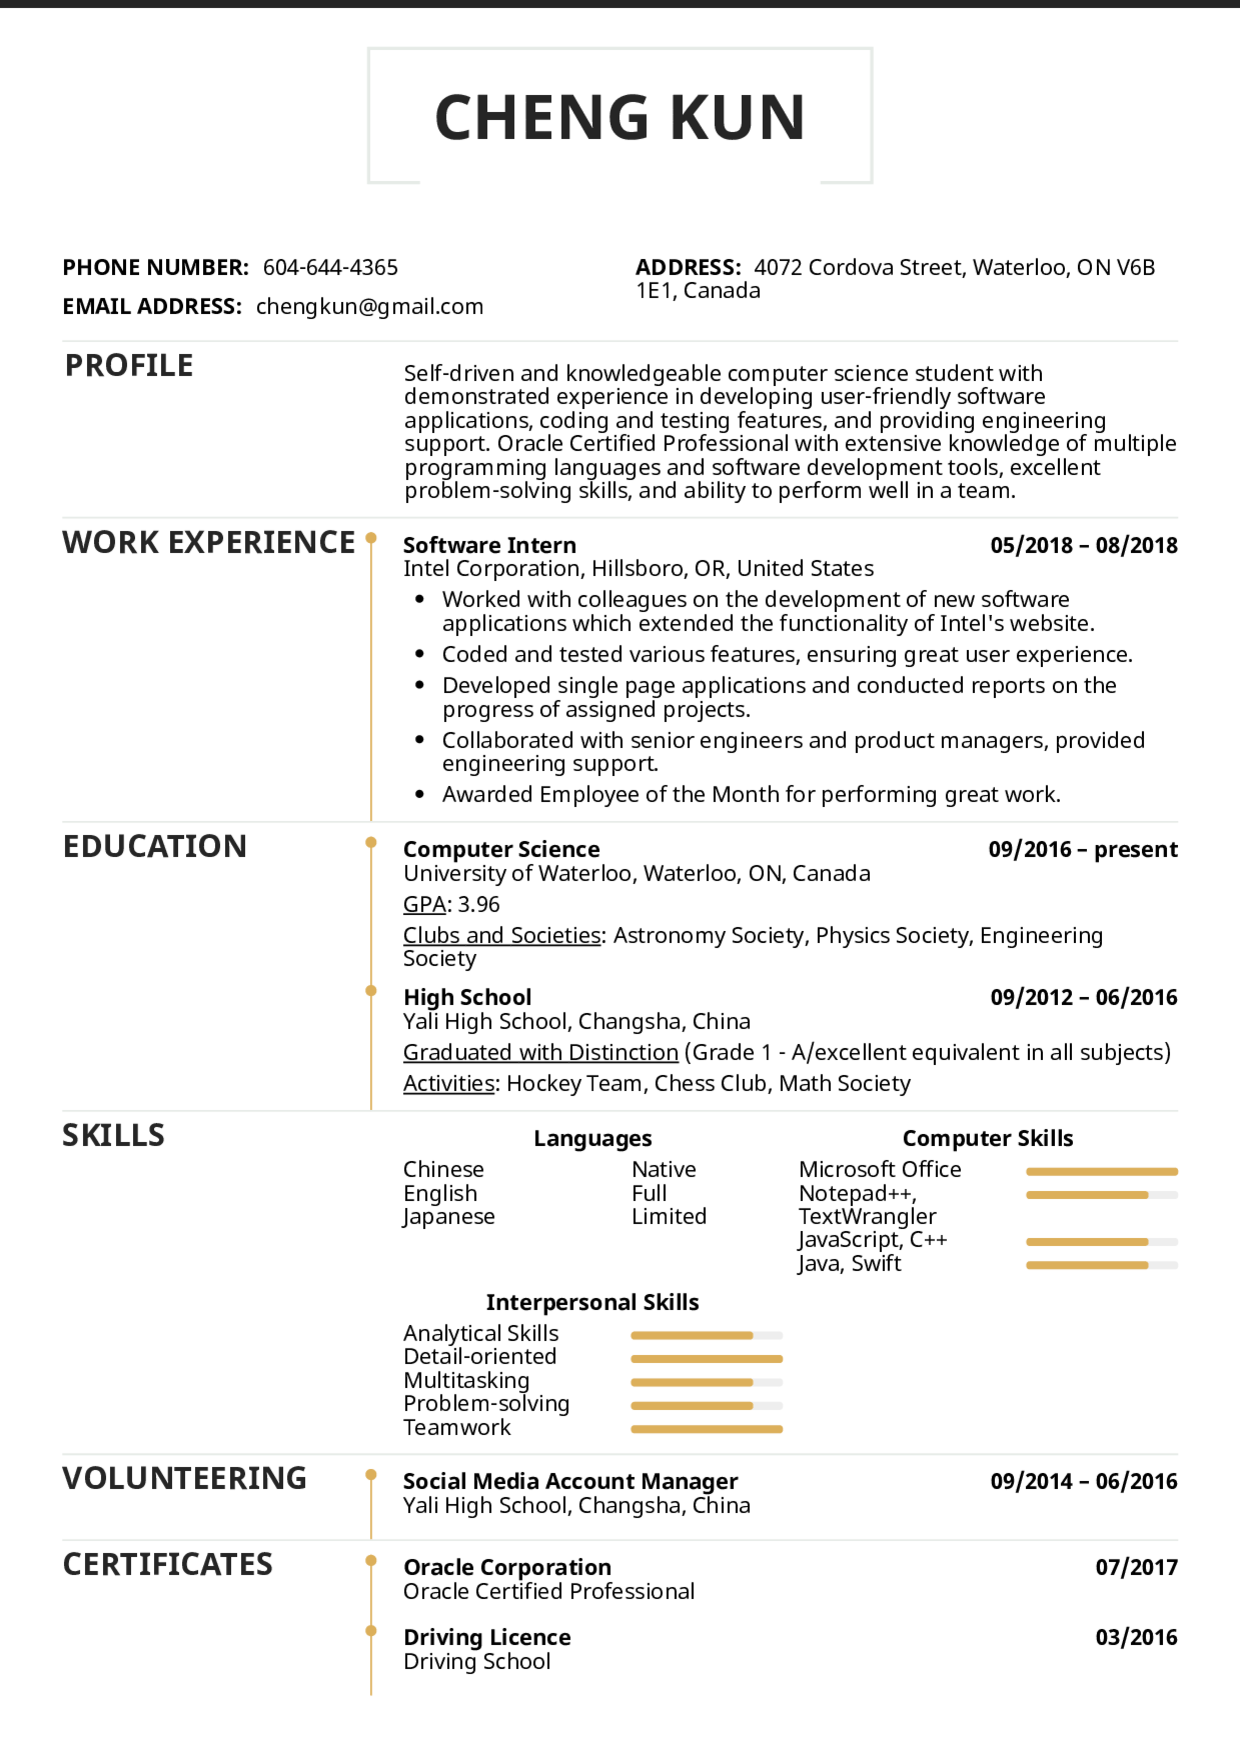 Resume Templates For Students Andriblog.design in 2020